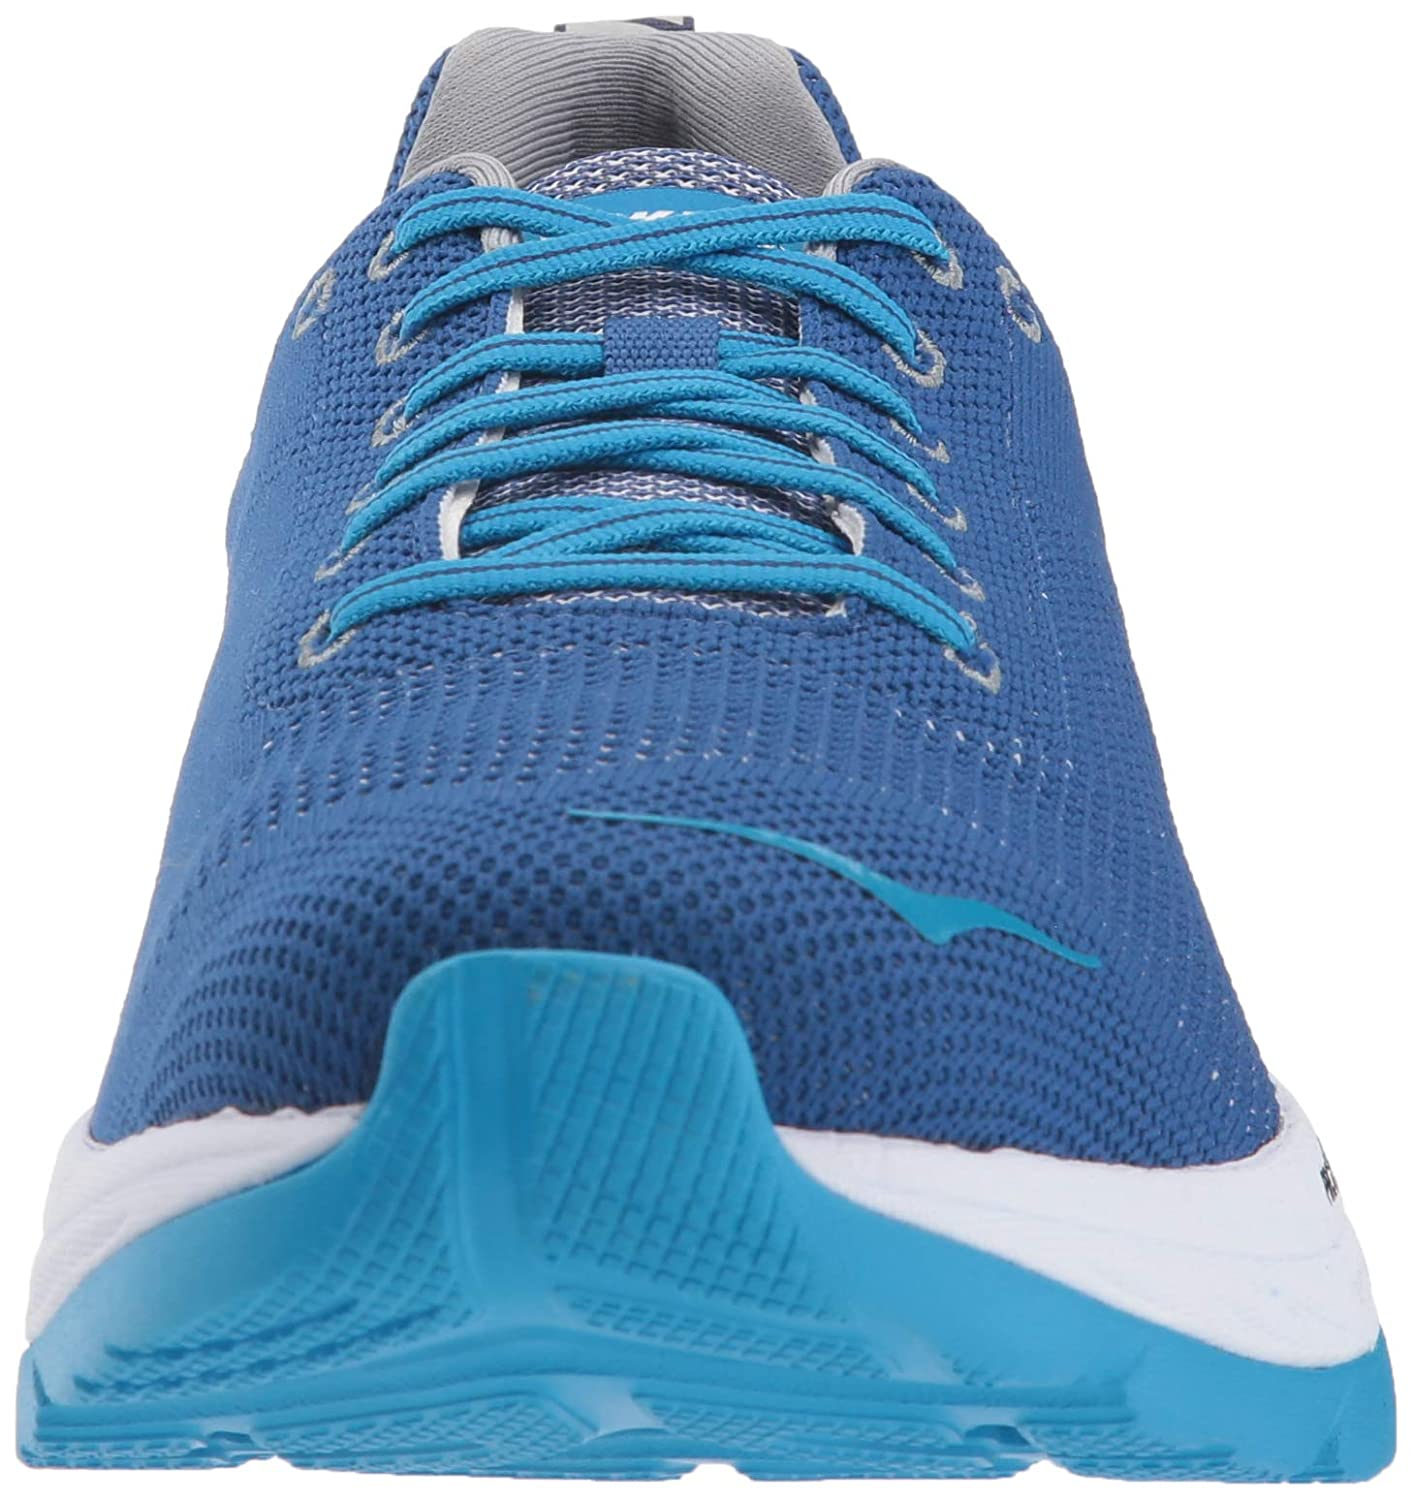 HOKA ONE ONE Mach Mens Running Shoes